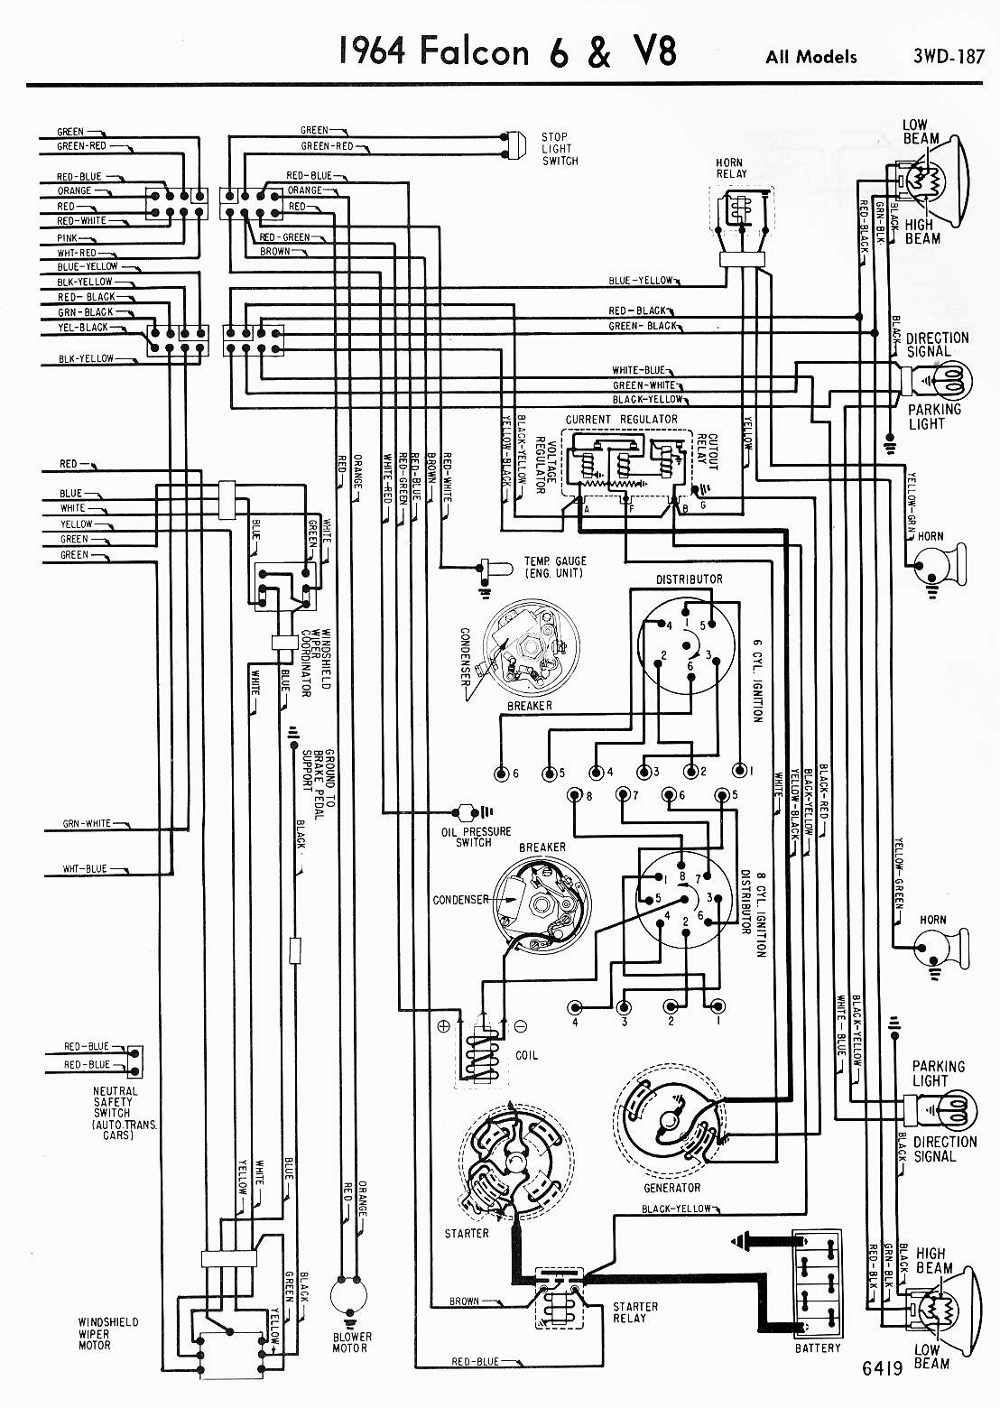 1964 ford falcon wiring diagram | wiring diagrams of 1964 ford 6 and v8  falcon all models part 2 .